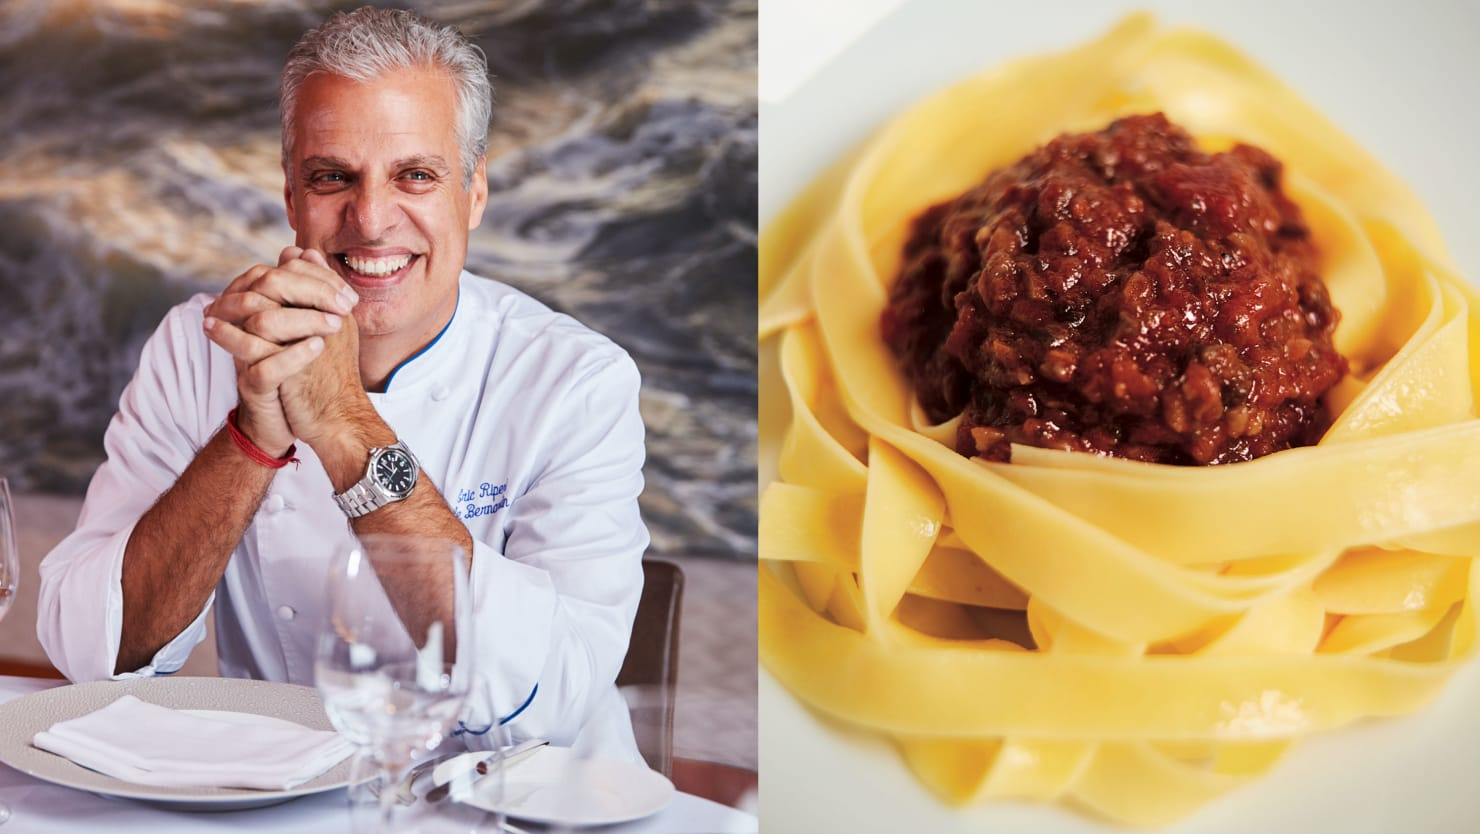 Can You Make Bolognese Without Meat? Eric Ripert Thinks So